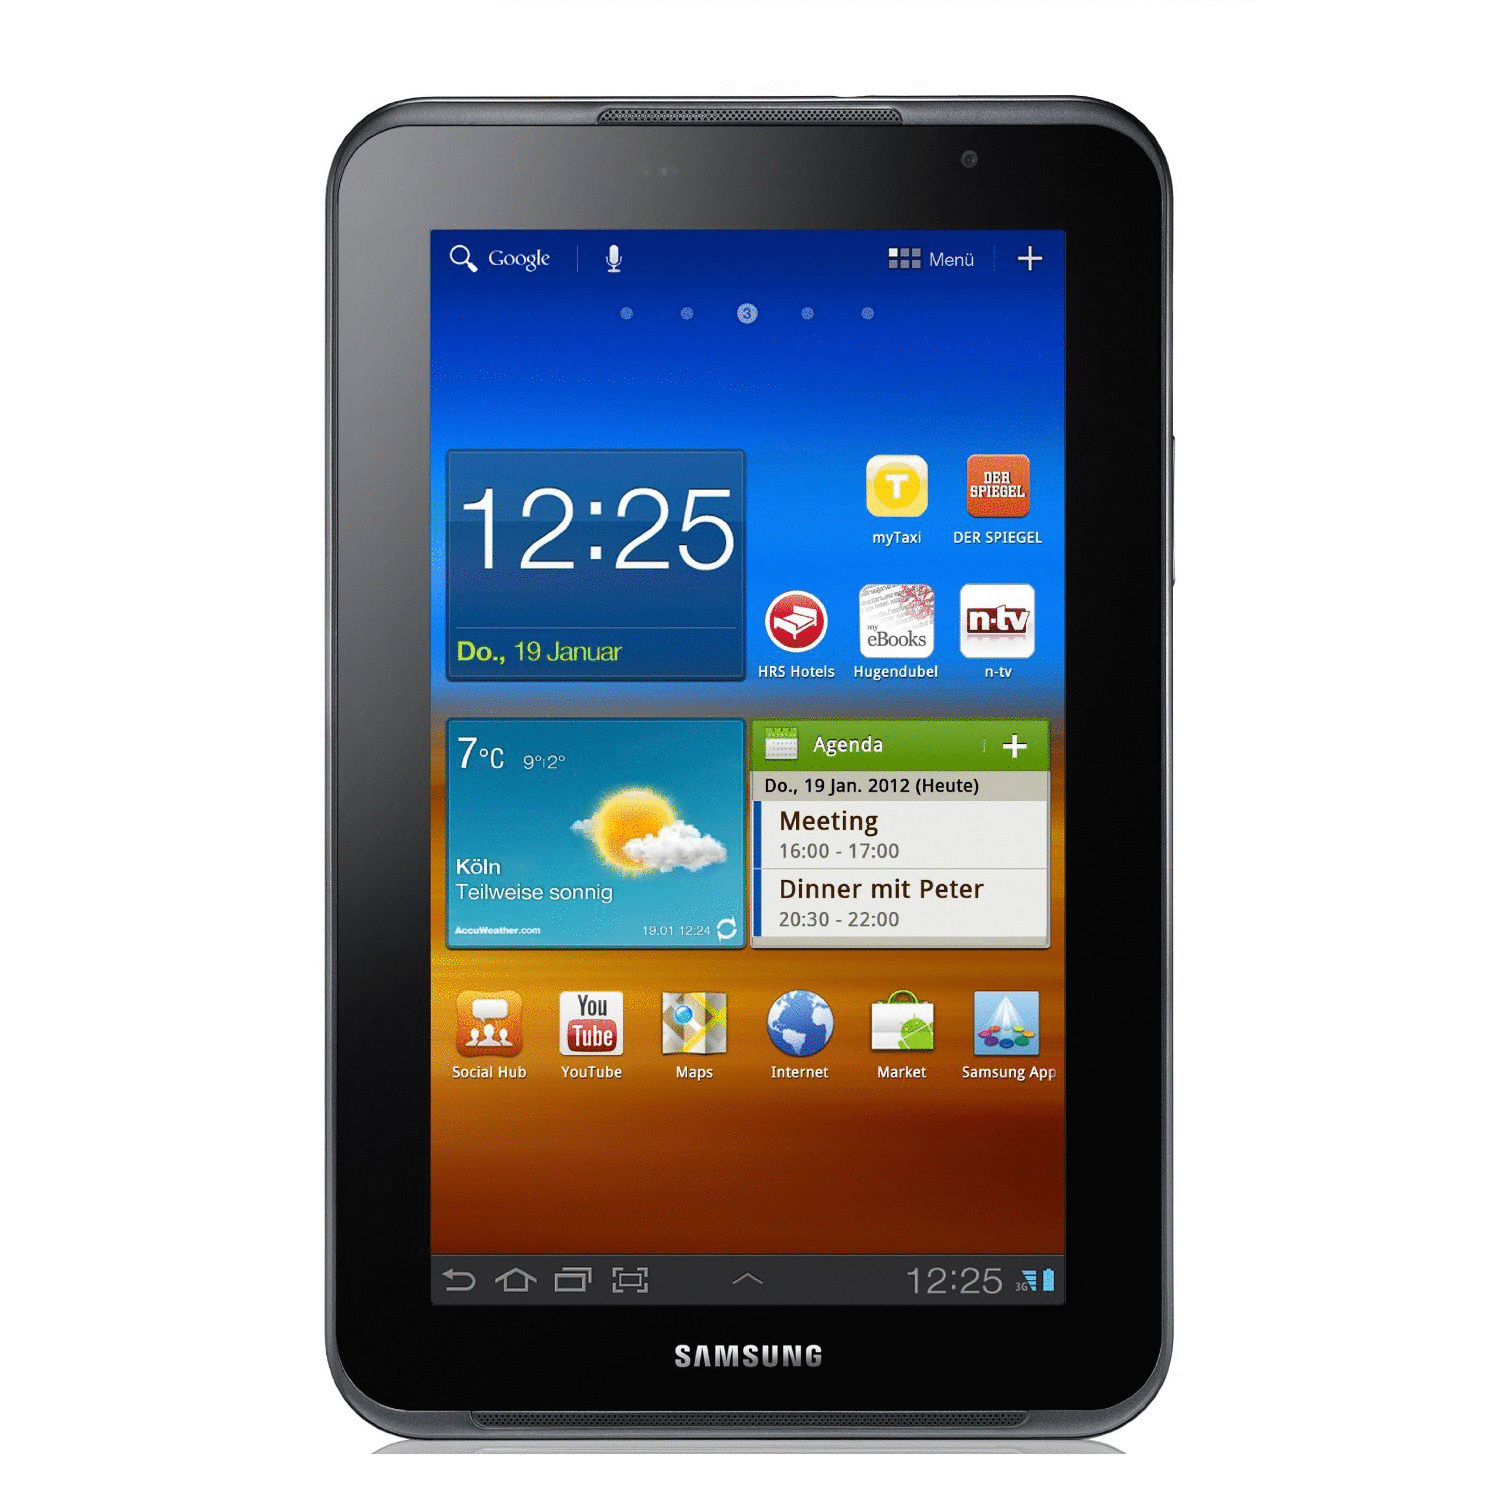 Samsung Galaxy Tab 7.0 Plus N 7 16GB [Wi-Fi] metallic gray